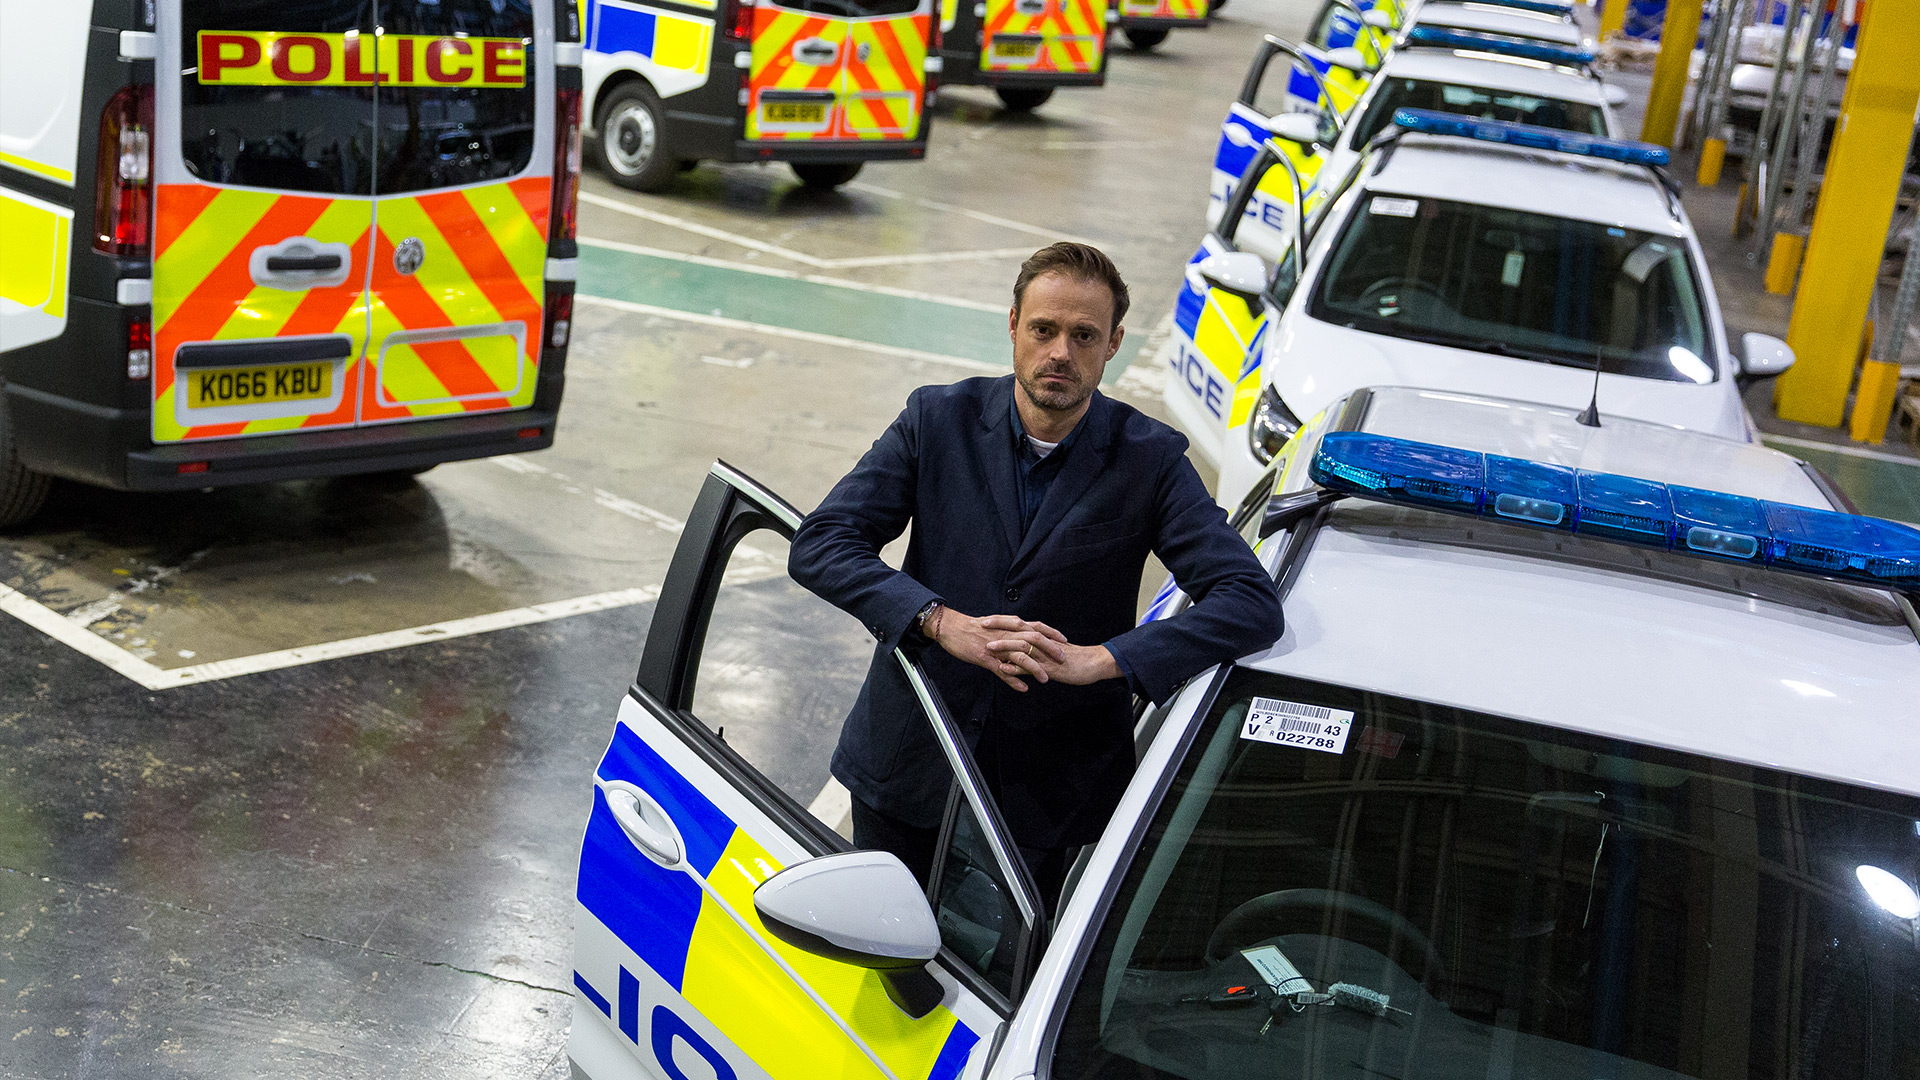 All New Traffic Cops Image